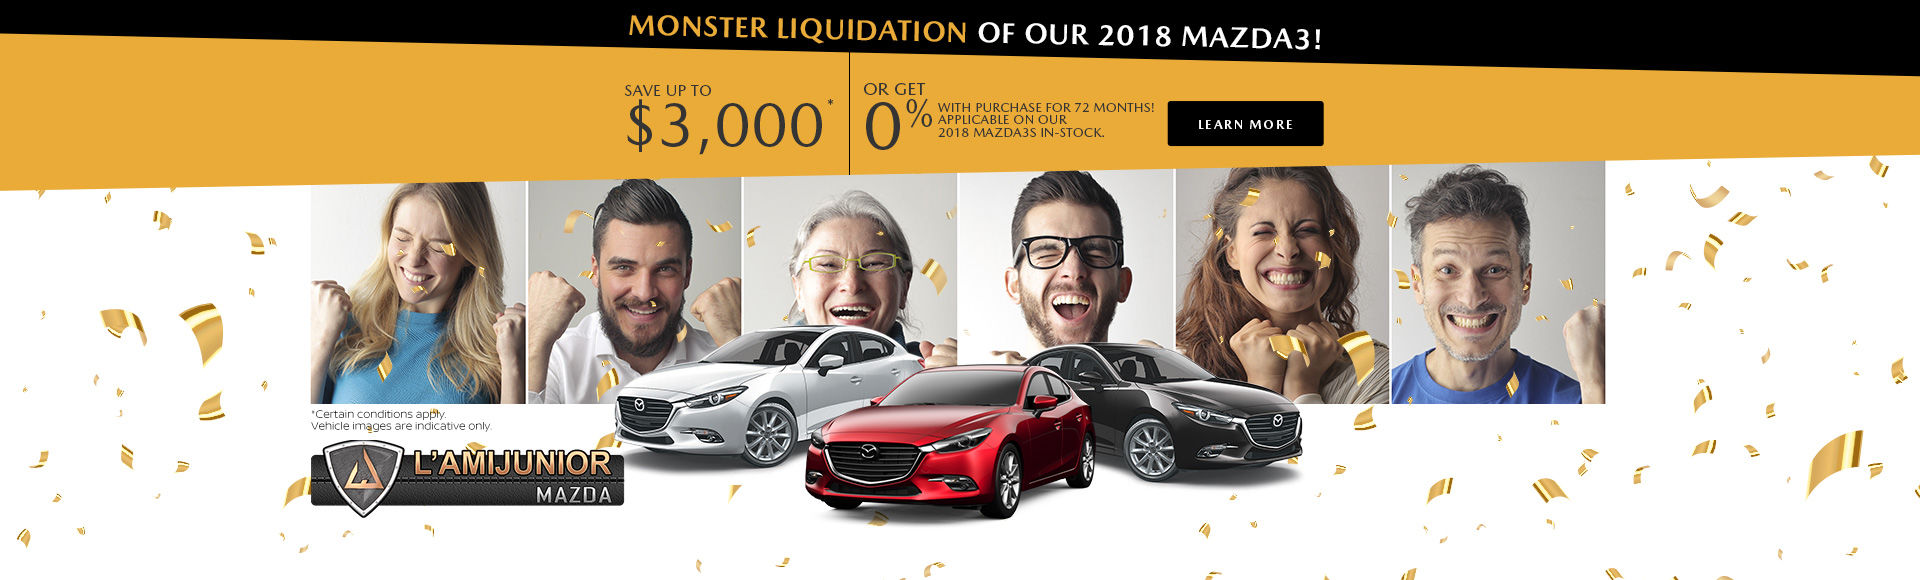 Monster Liquidation of our 2018 Mazda3s